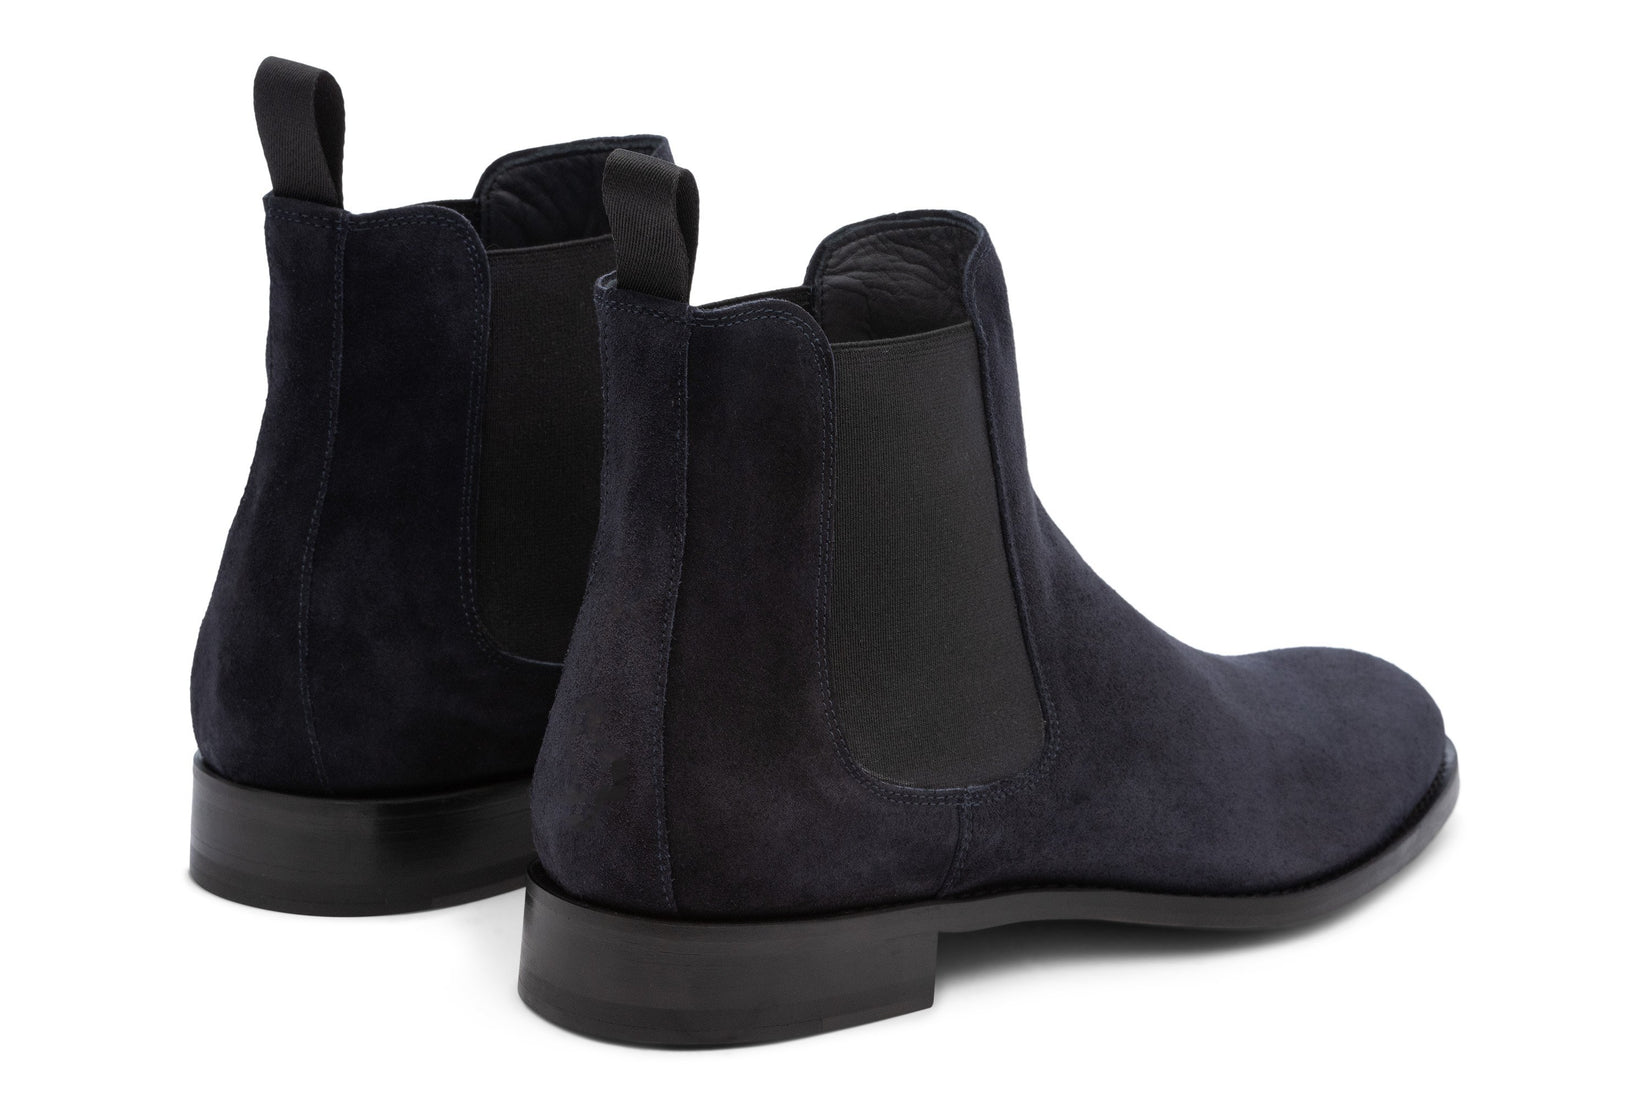 Wednesday Chelsea Boot in Navy Suede